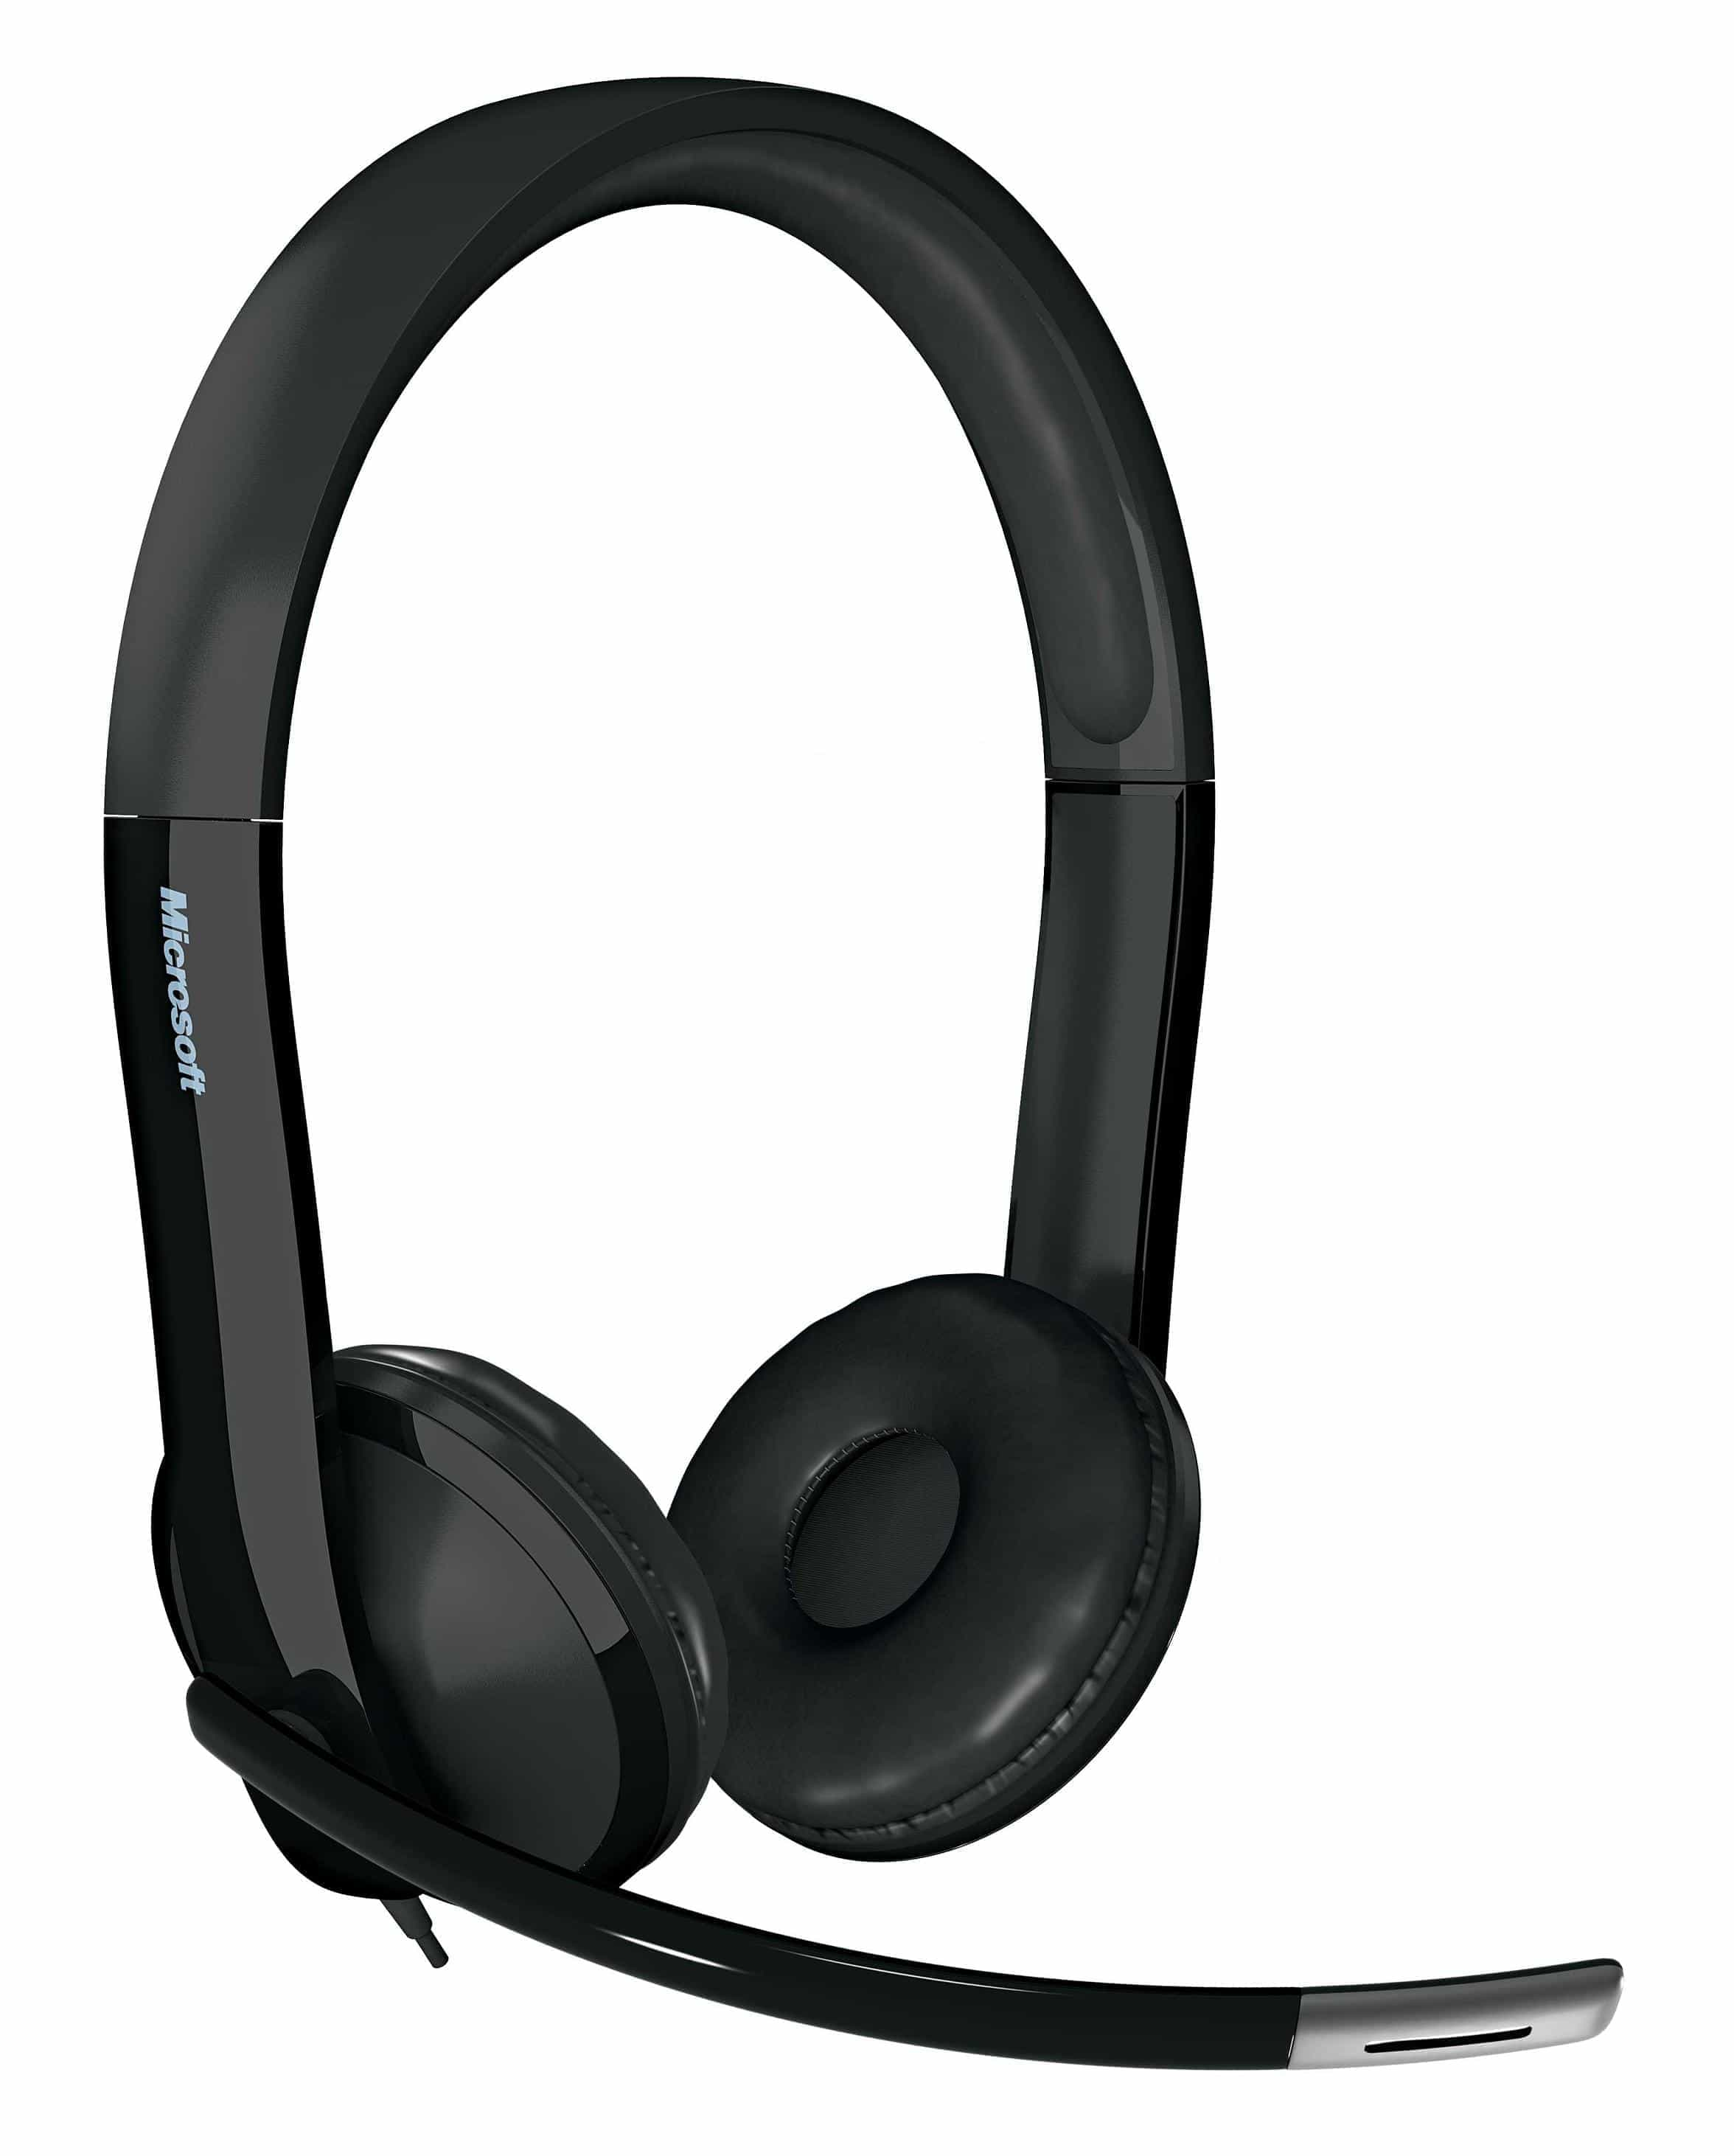 MICROSOFT Headset LifeChat LX-6000 for Business